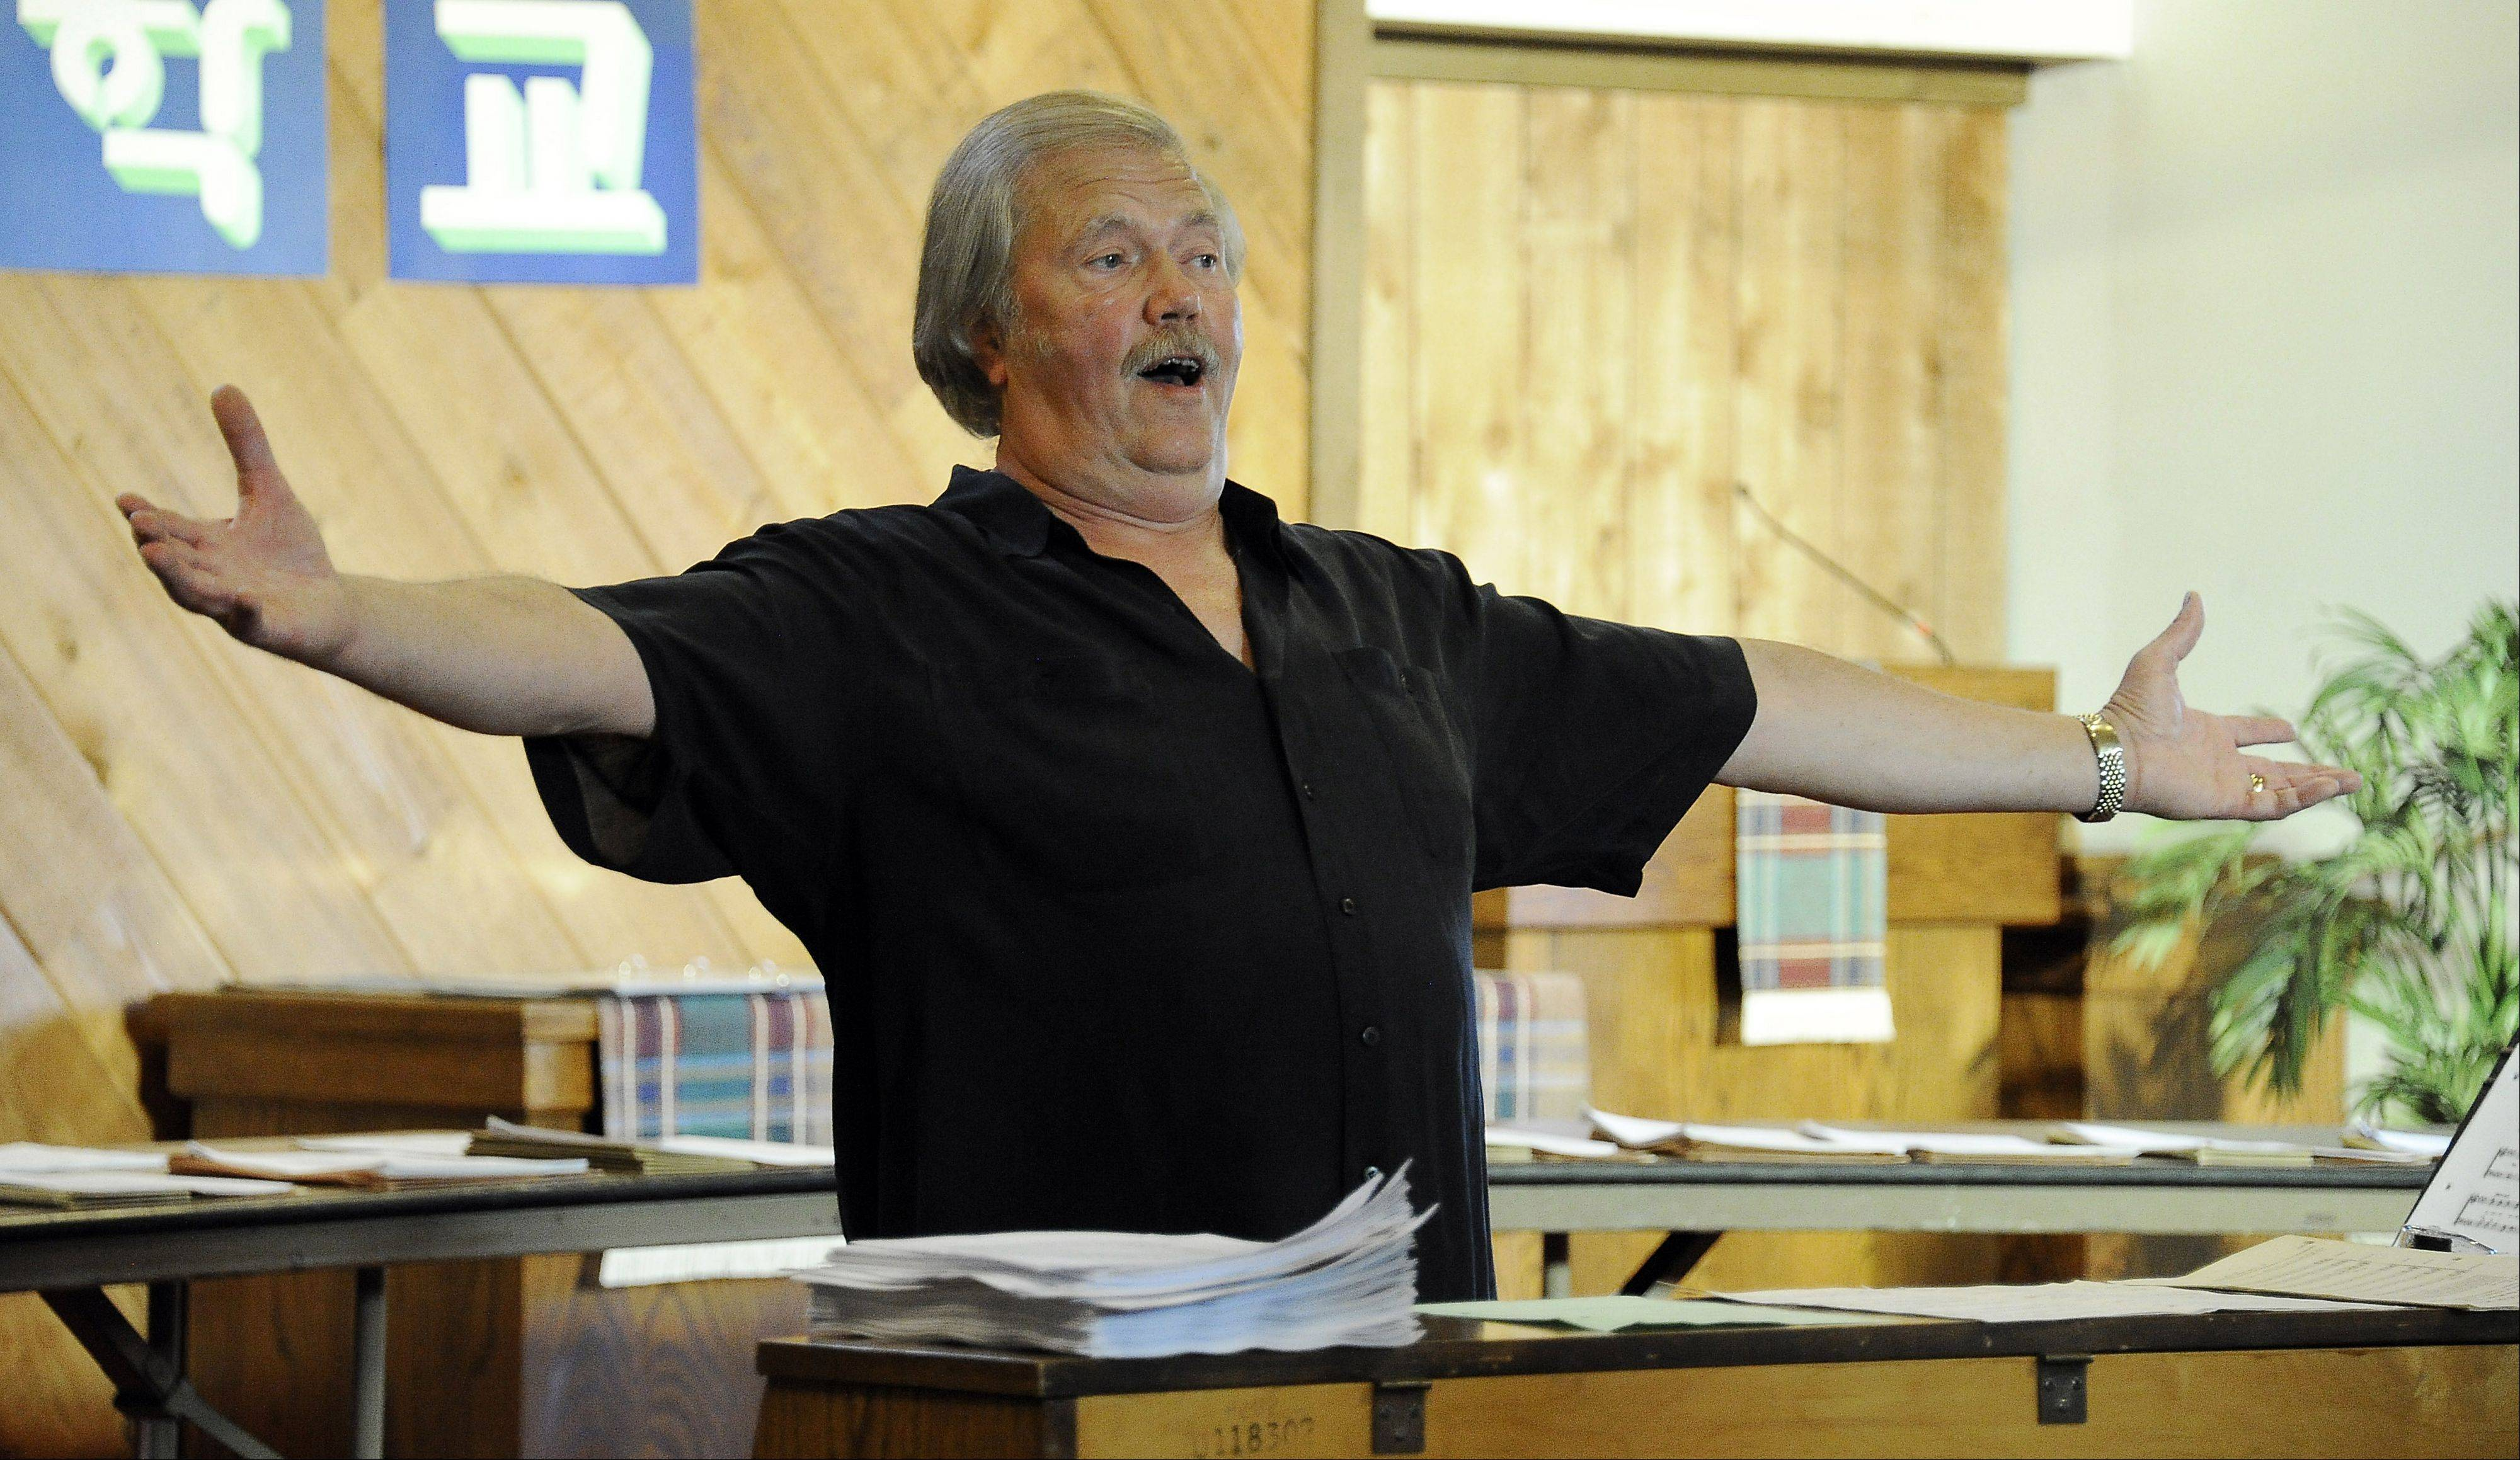 Jerry Swanson of Elk Grove Village is coming out of retirement to direct members of his District 214 chorale groups in a November concert.